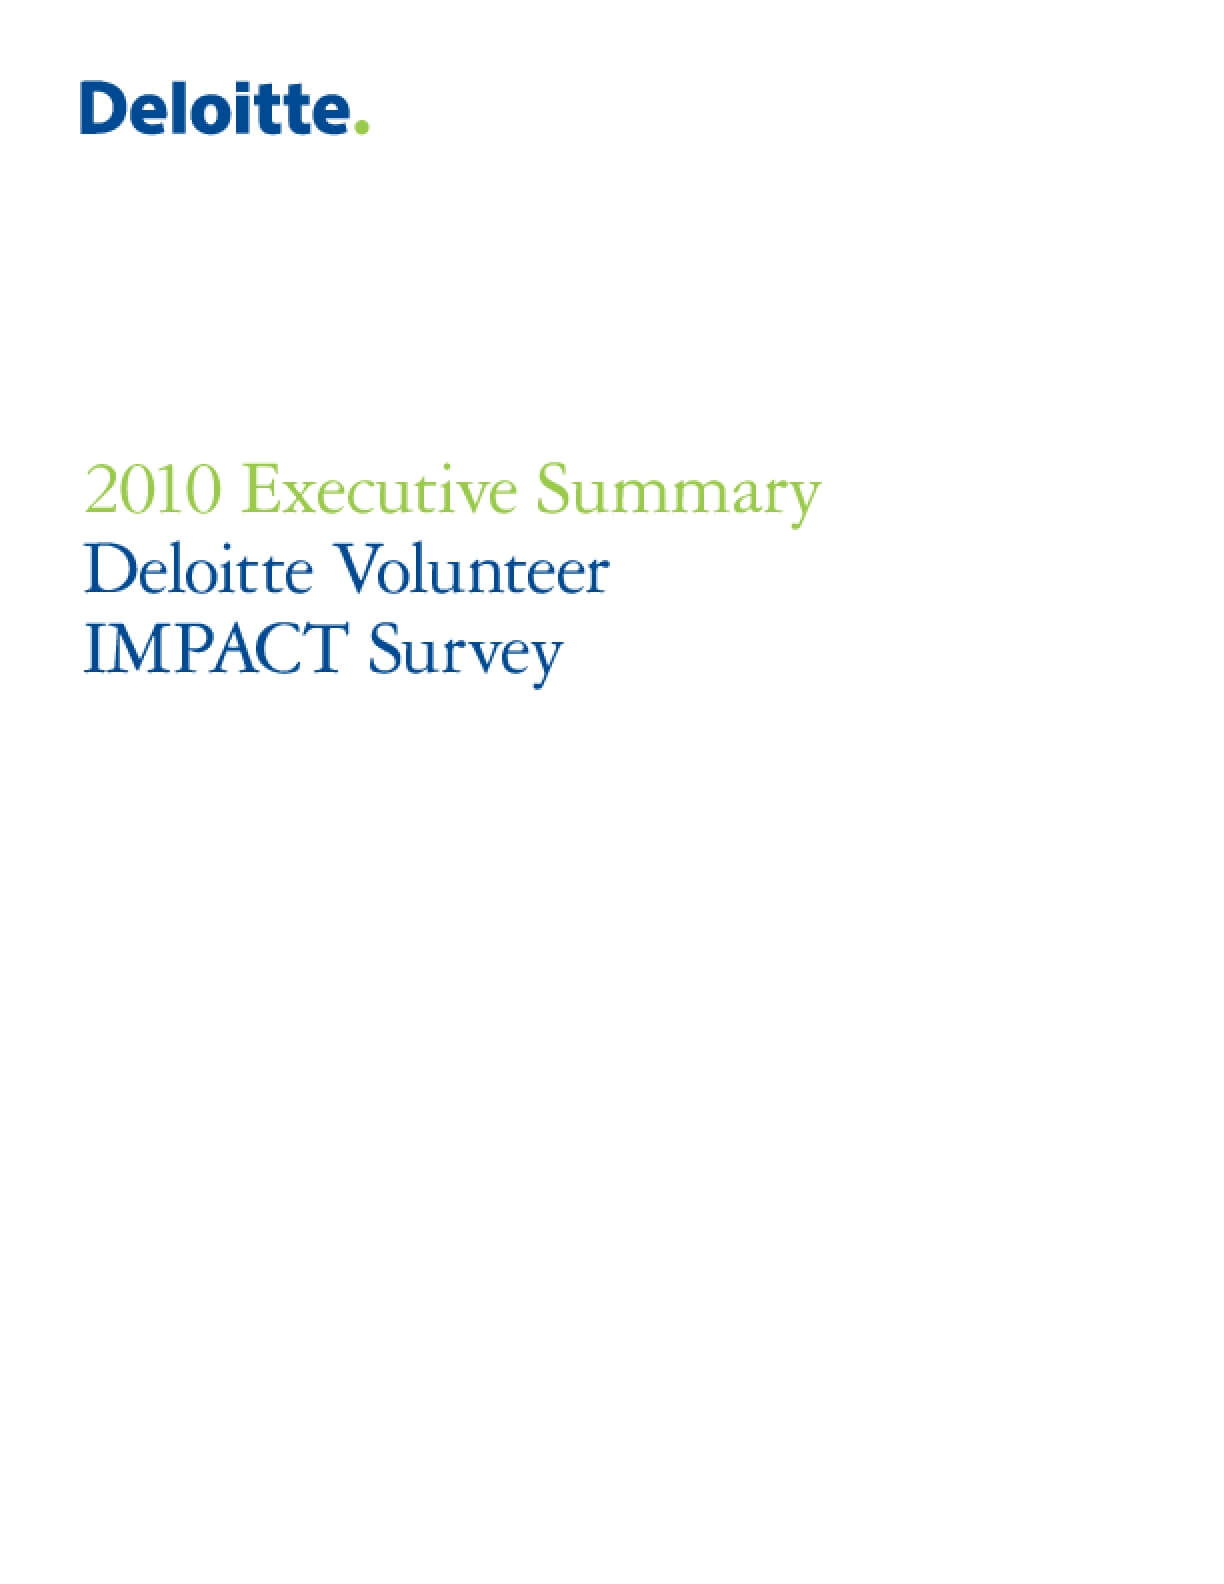 2010 Executive Summary: Deloitte Volunteer IMPACT Survey